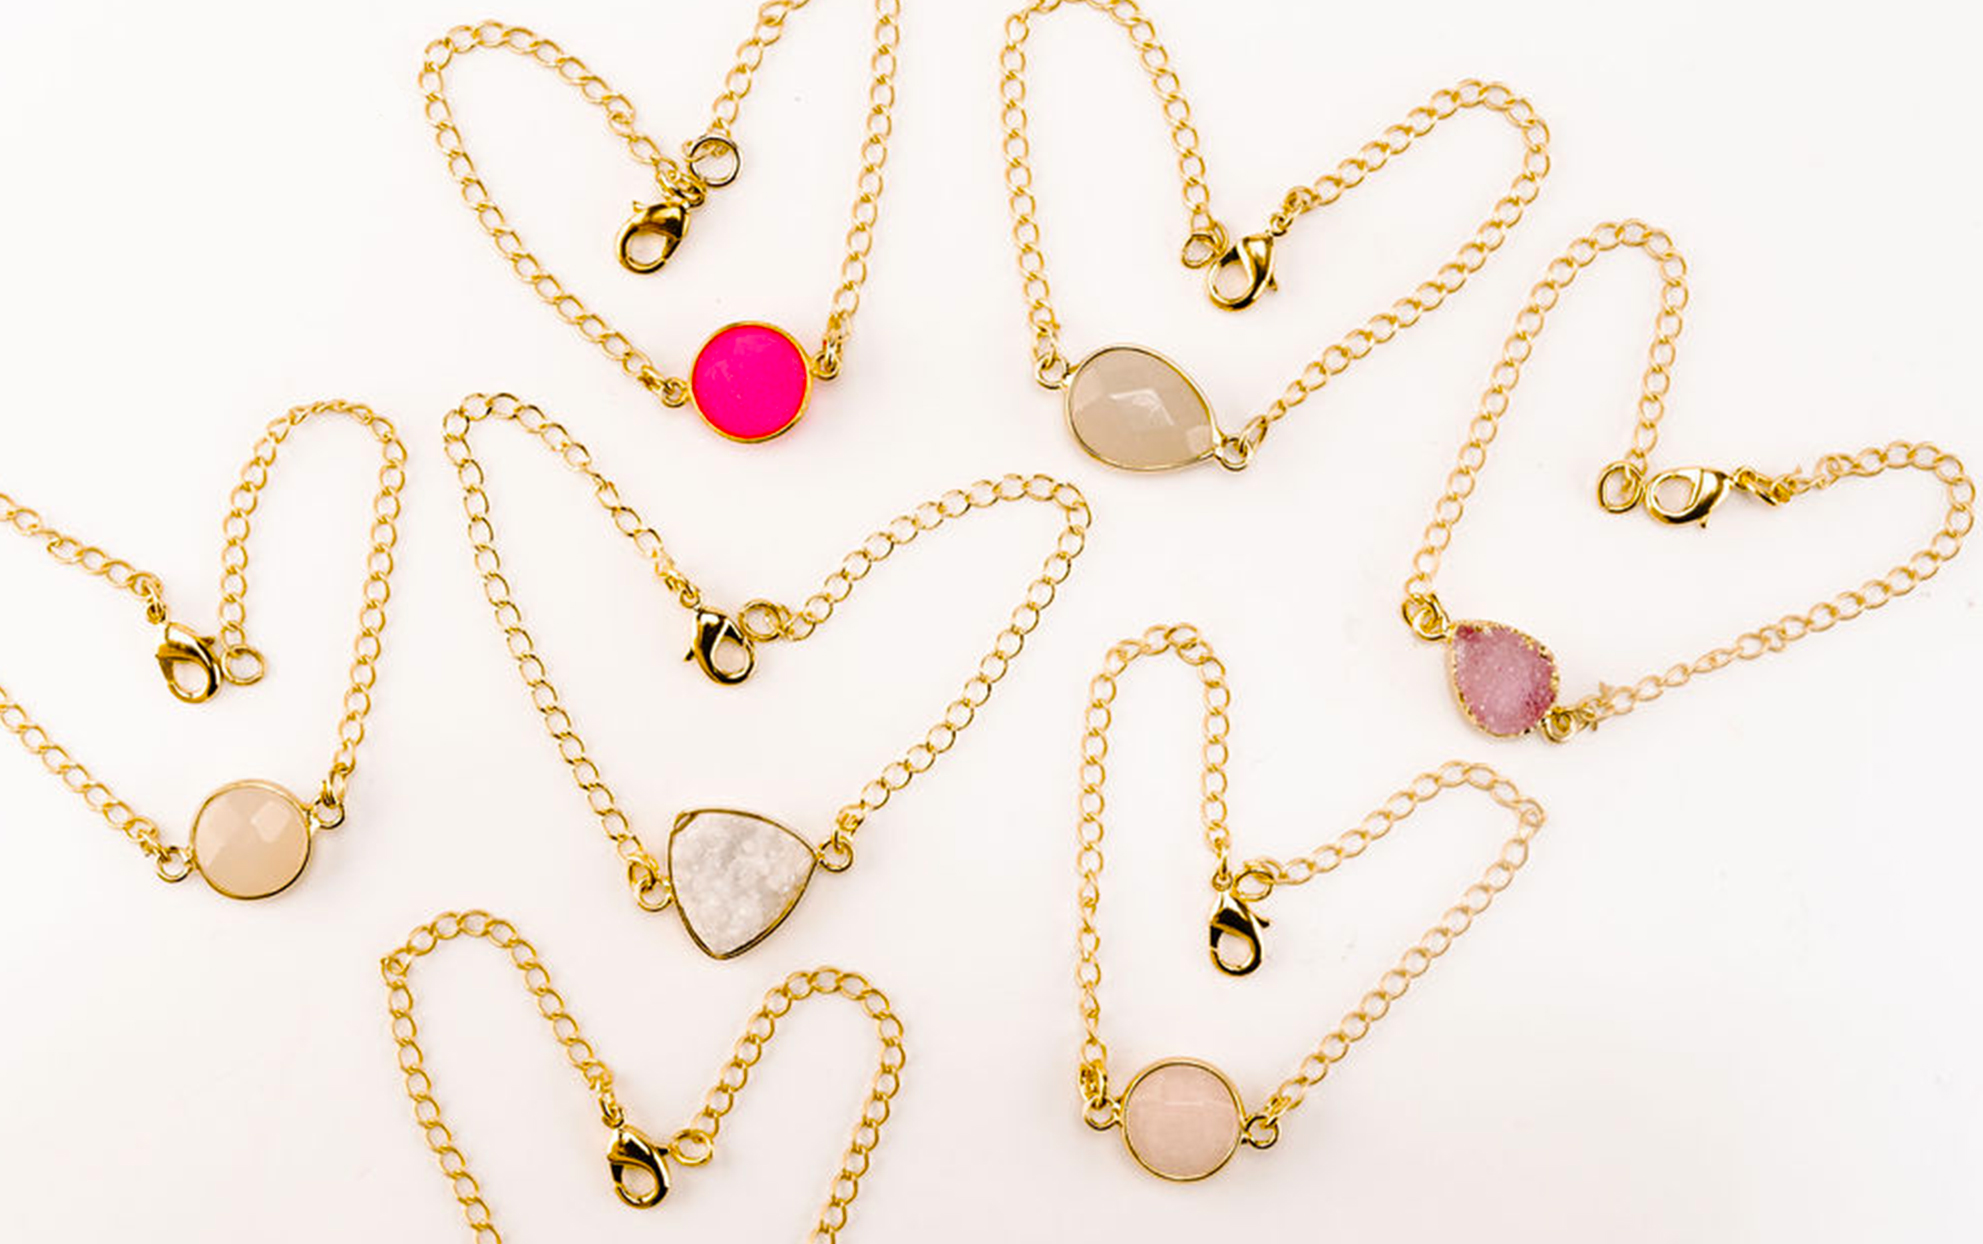 multiple gold and stone bracelets on a light background